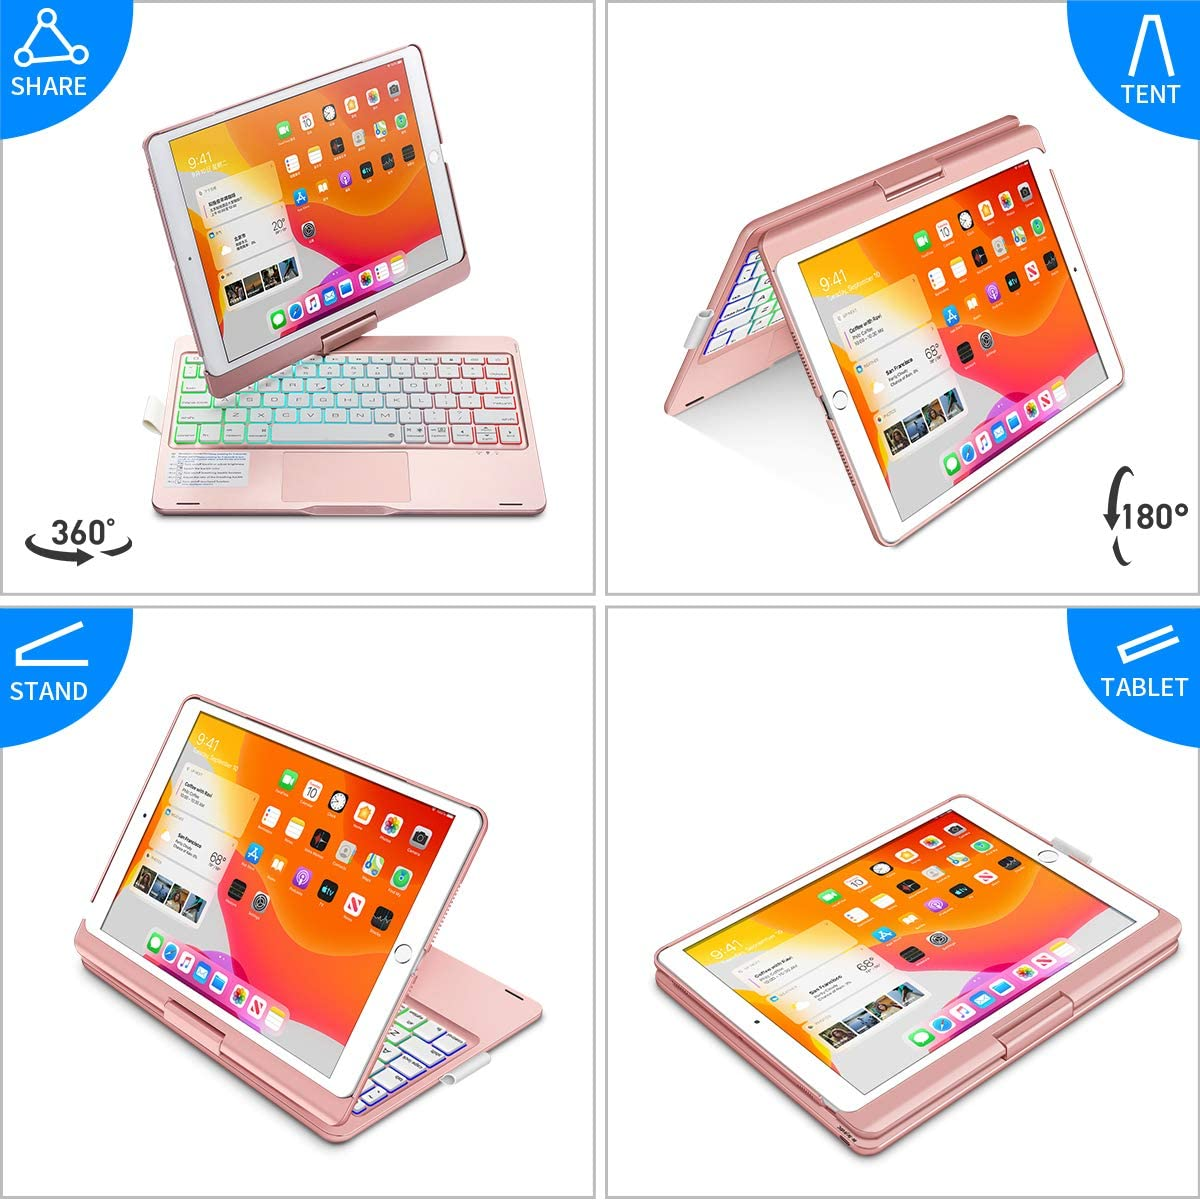 iPad 9th Generation Case with Keyboard and Pencil Holder, Keyboard with Touchpad for 10.2 inch iPad 9th Gen 2021/ 8th Gen 2020/ 7th Gen 2019 and 10.5 inch iPad Air 3 / Pro 10.5-inch 2017 - Rose Gold